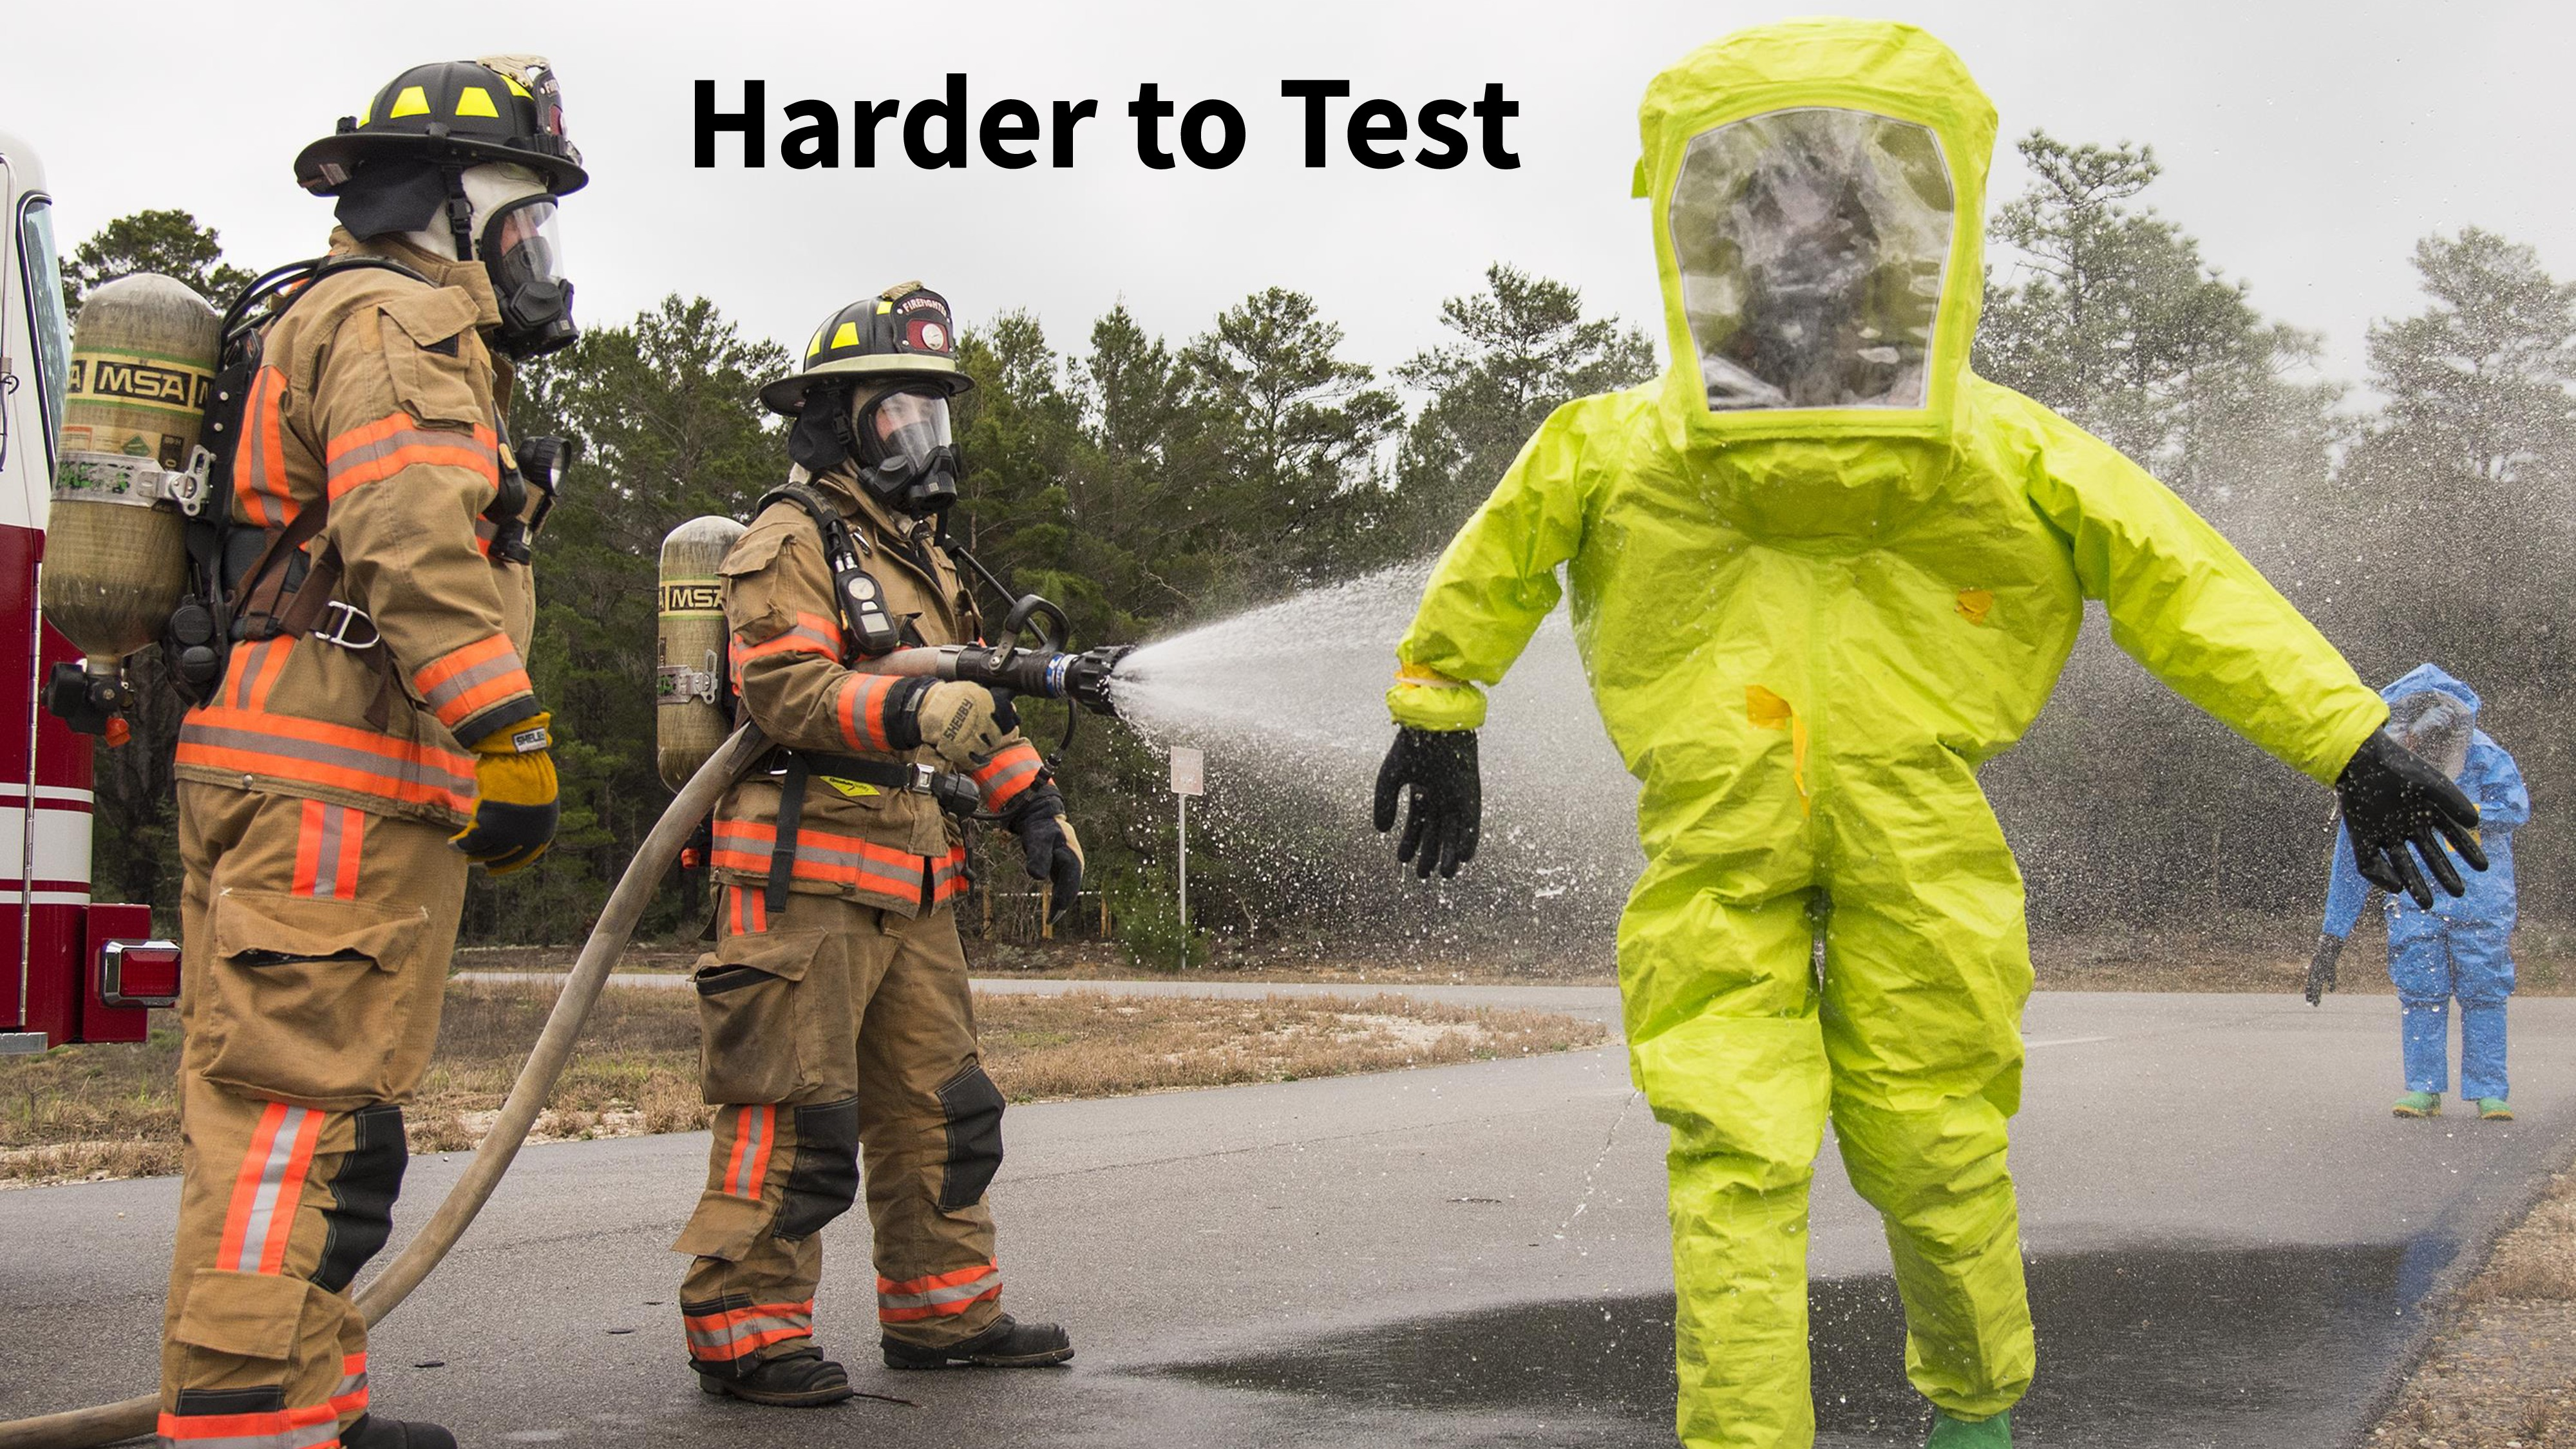 Harder to Test